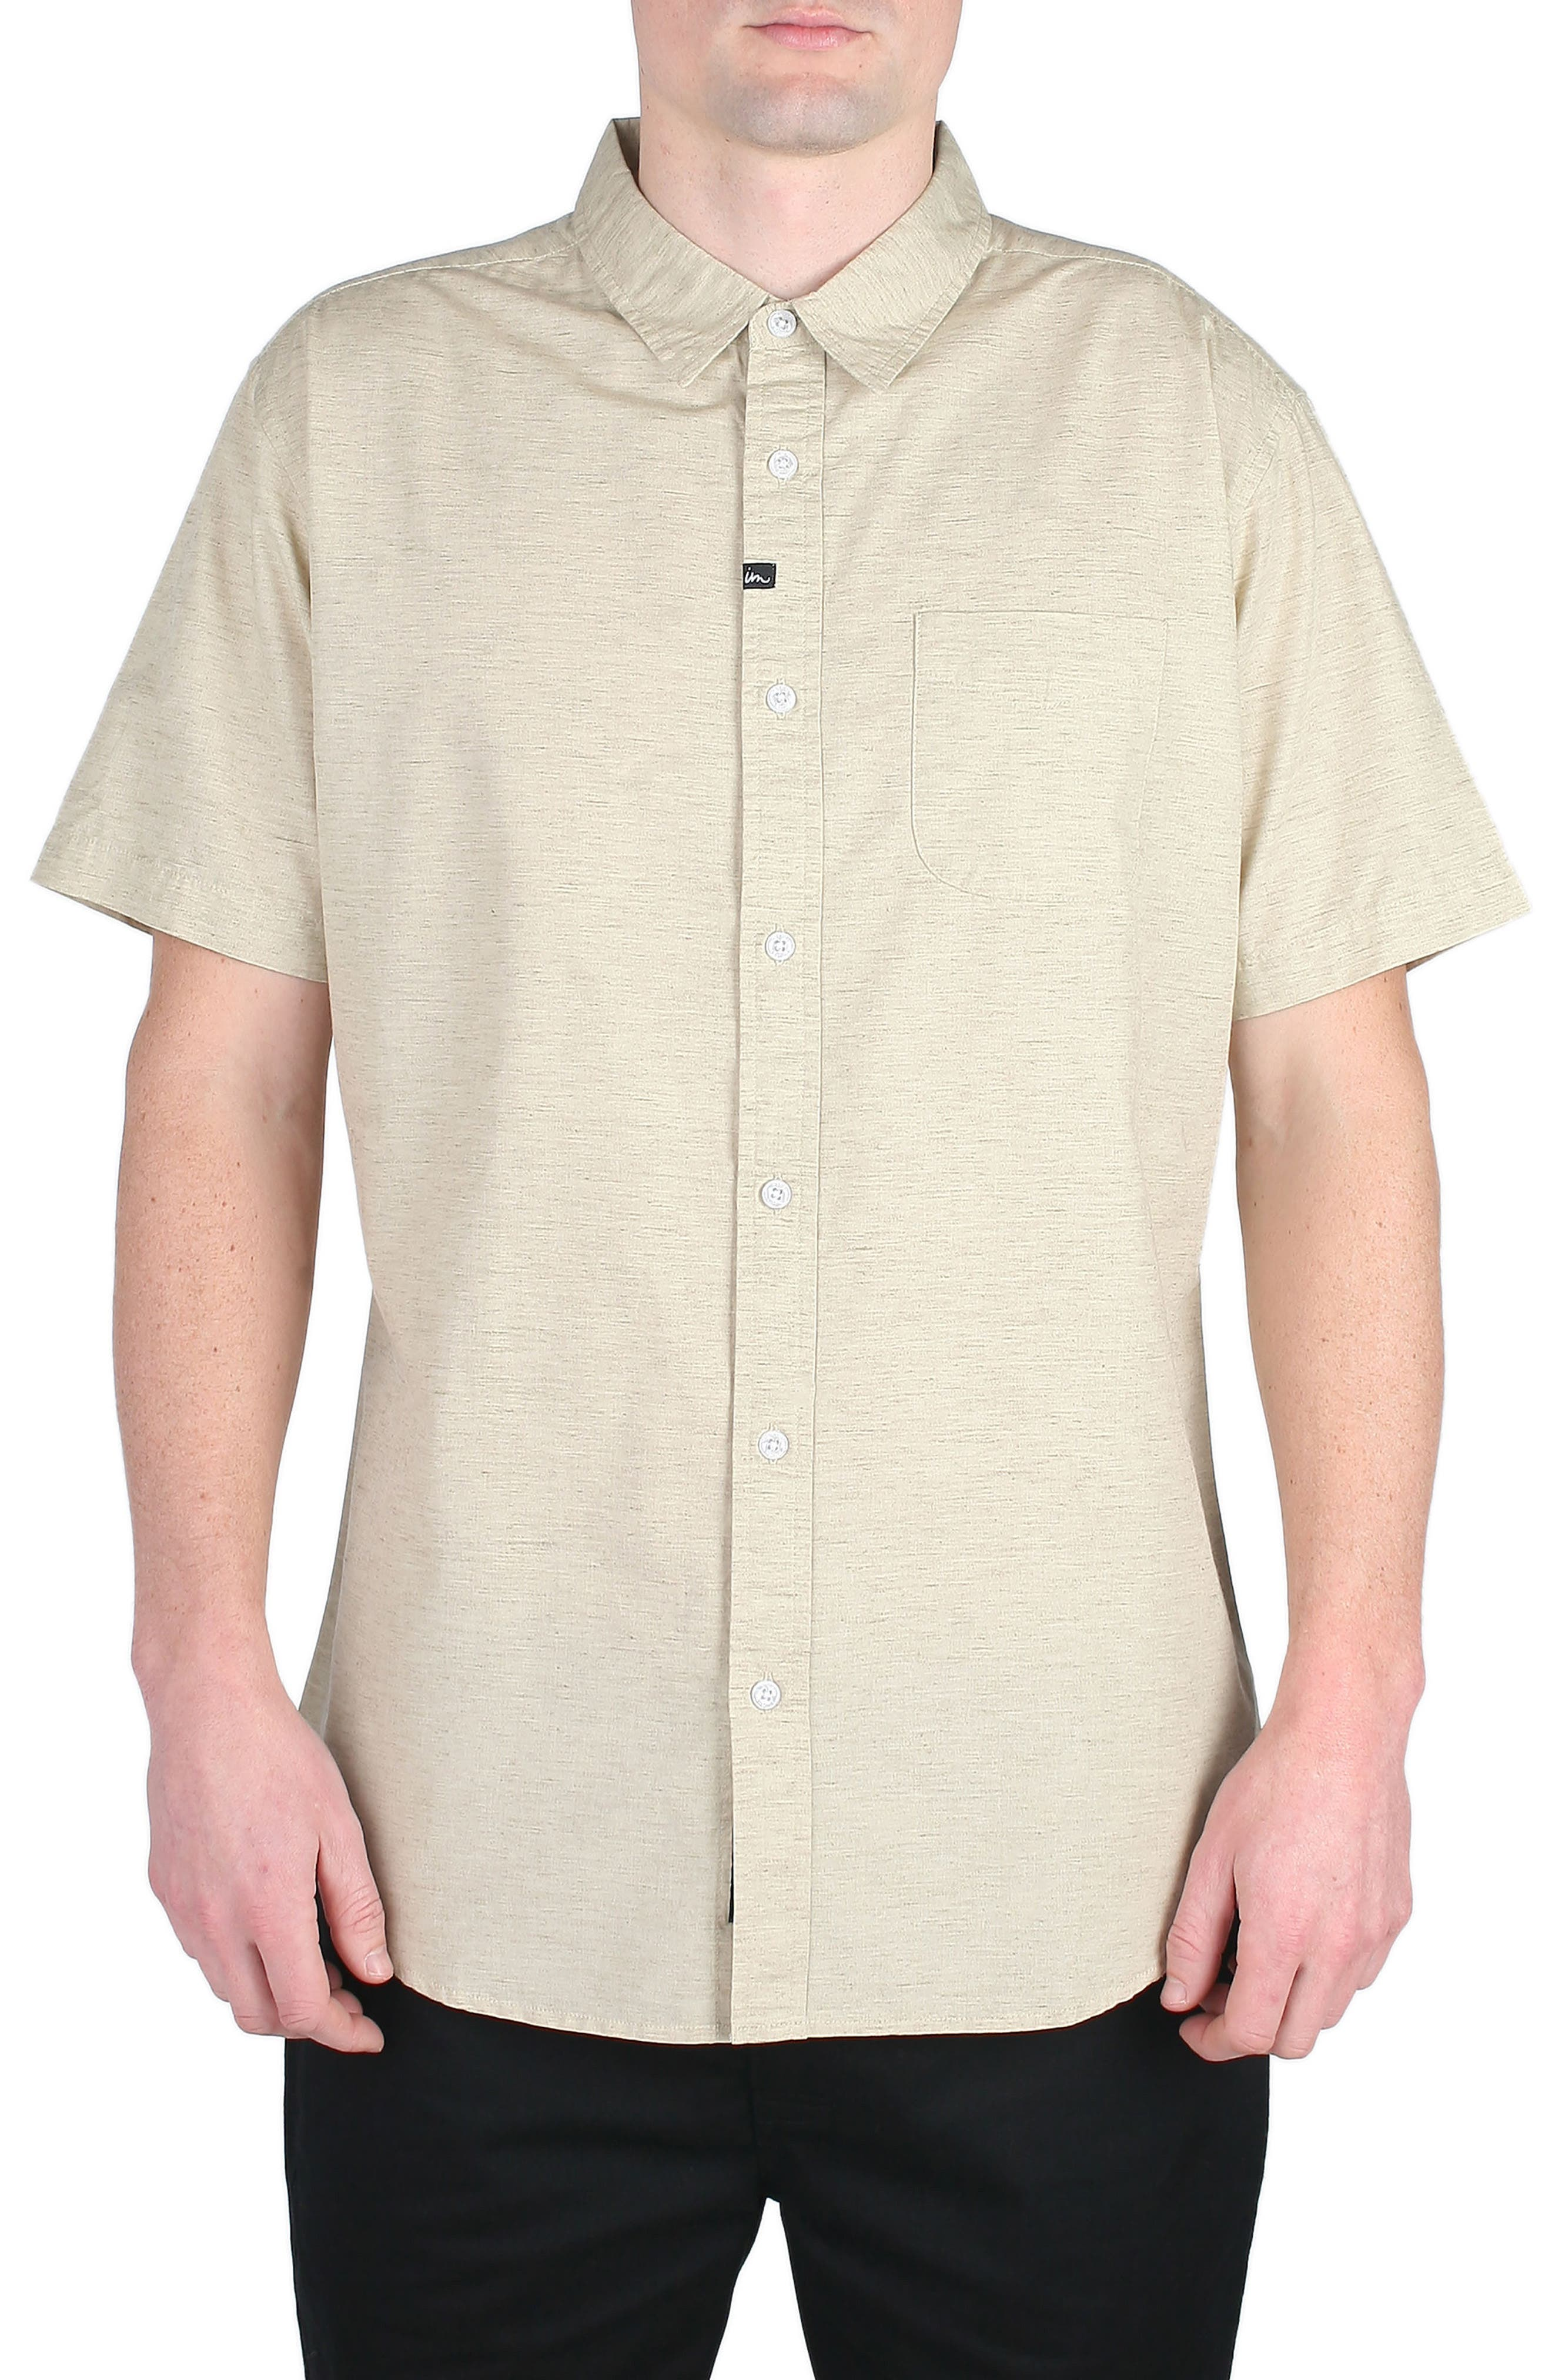 Imperial Motion Triumph Woven Shirt